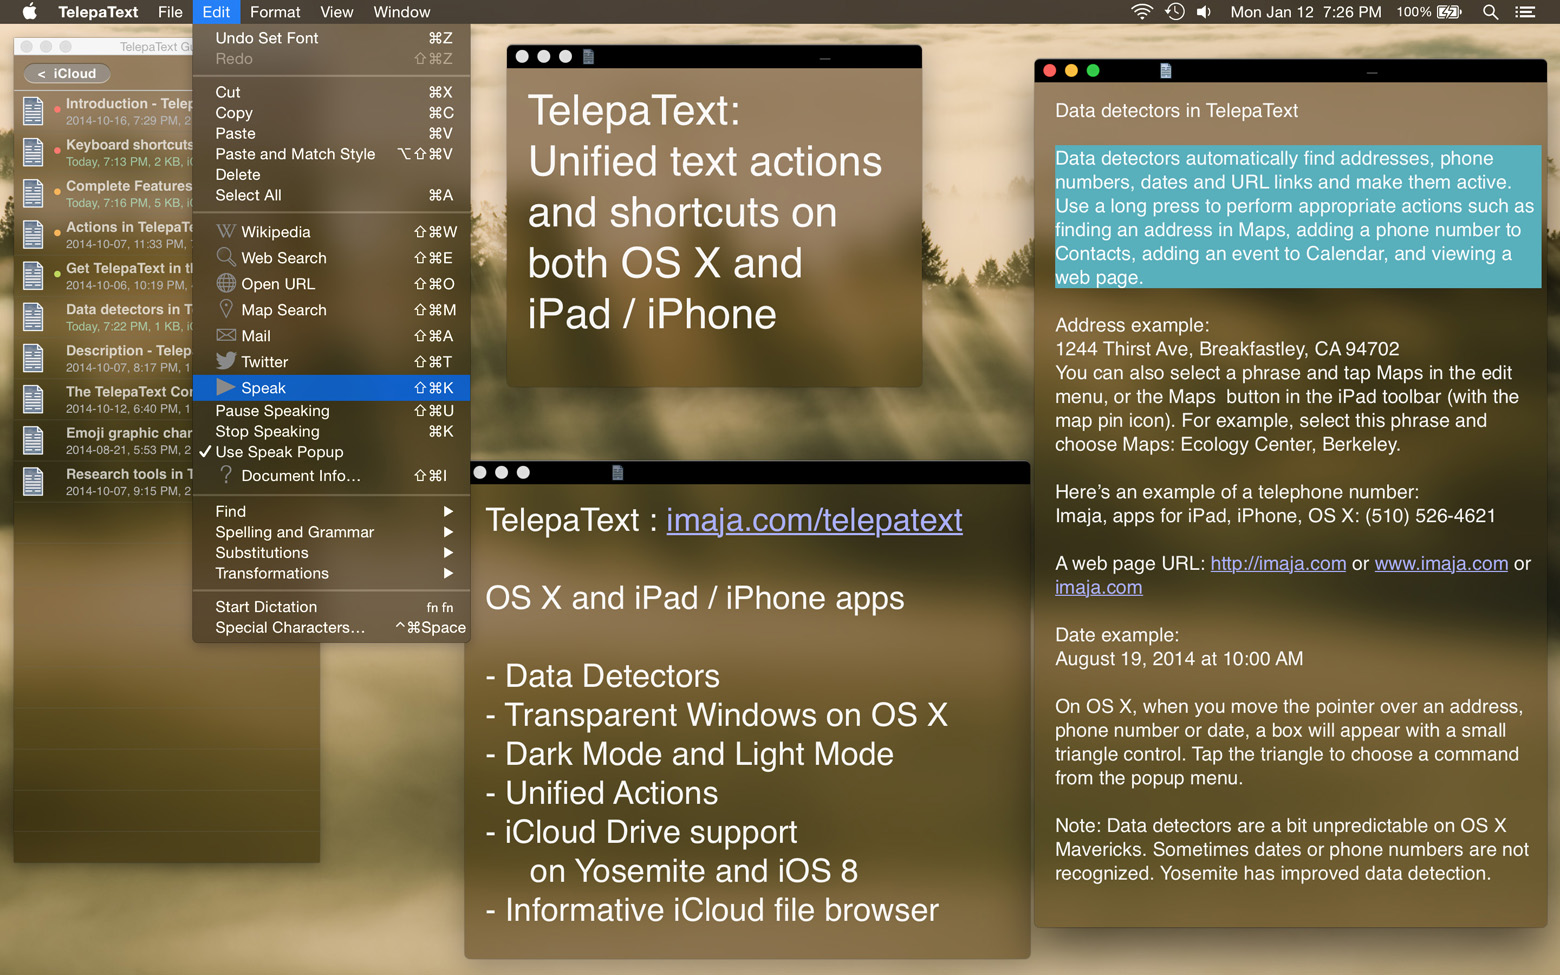 Press Release: TelepaText - new text tool with unified actions on